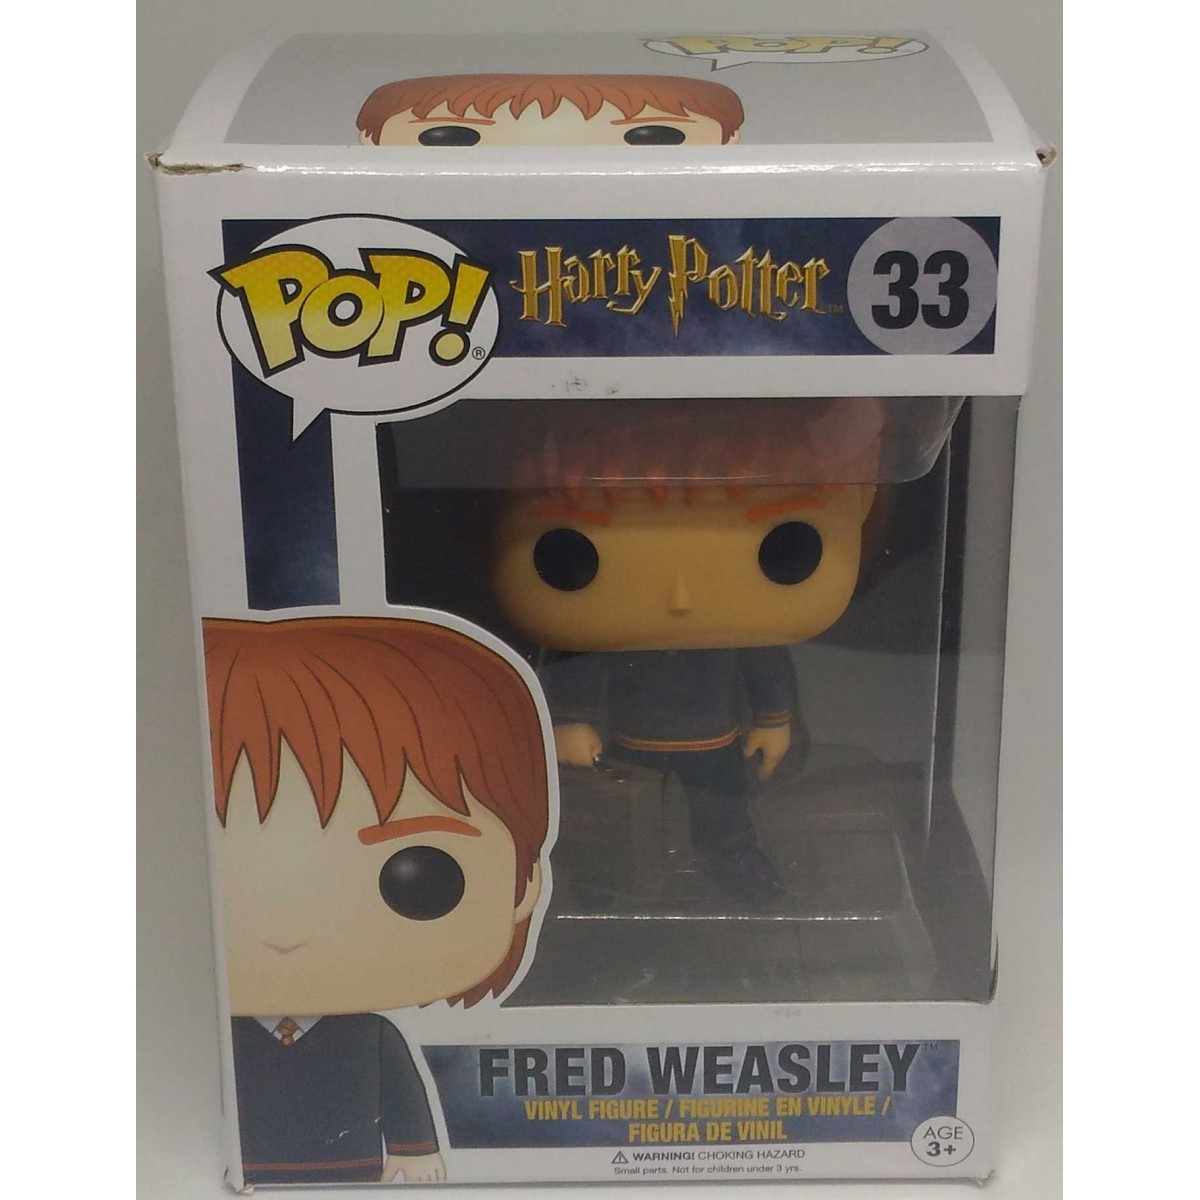 Funko Pop! Harry Potter - Fred Weasley